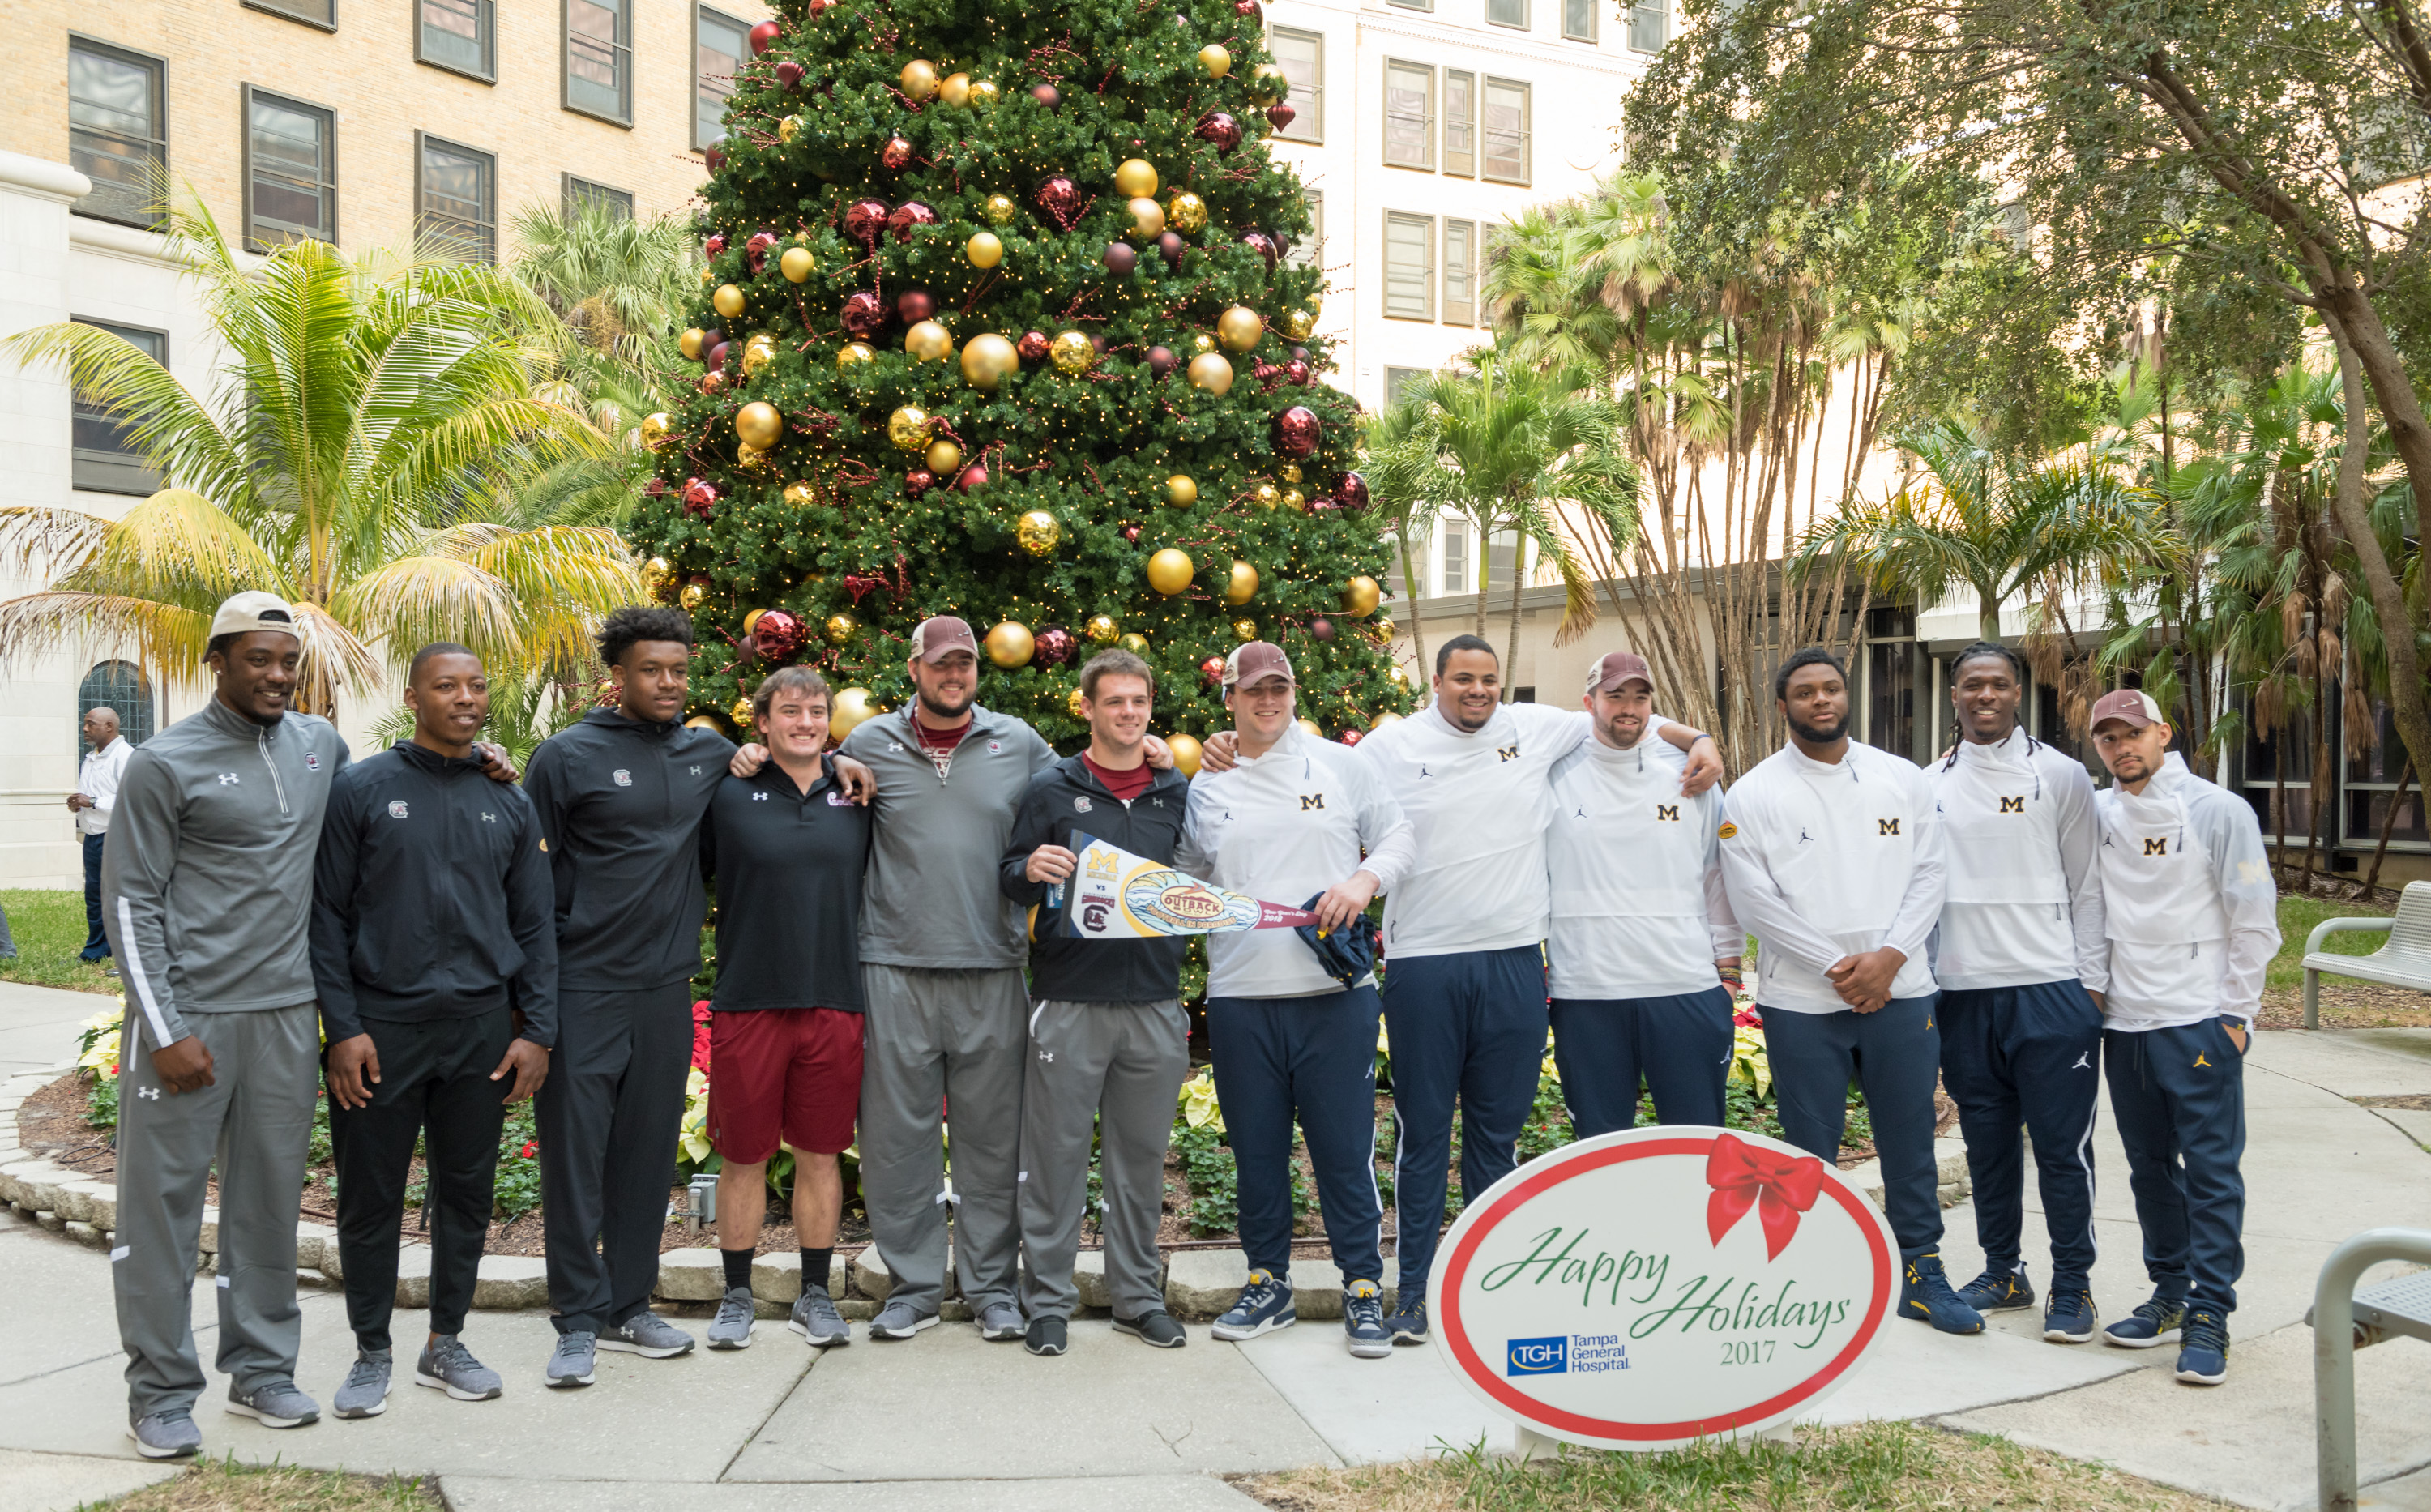 Outback bowl players in front of the Christmas tree